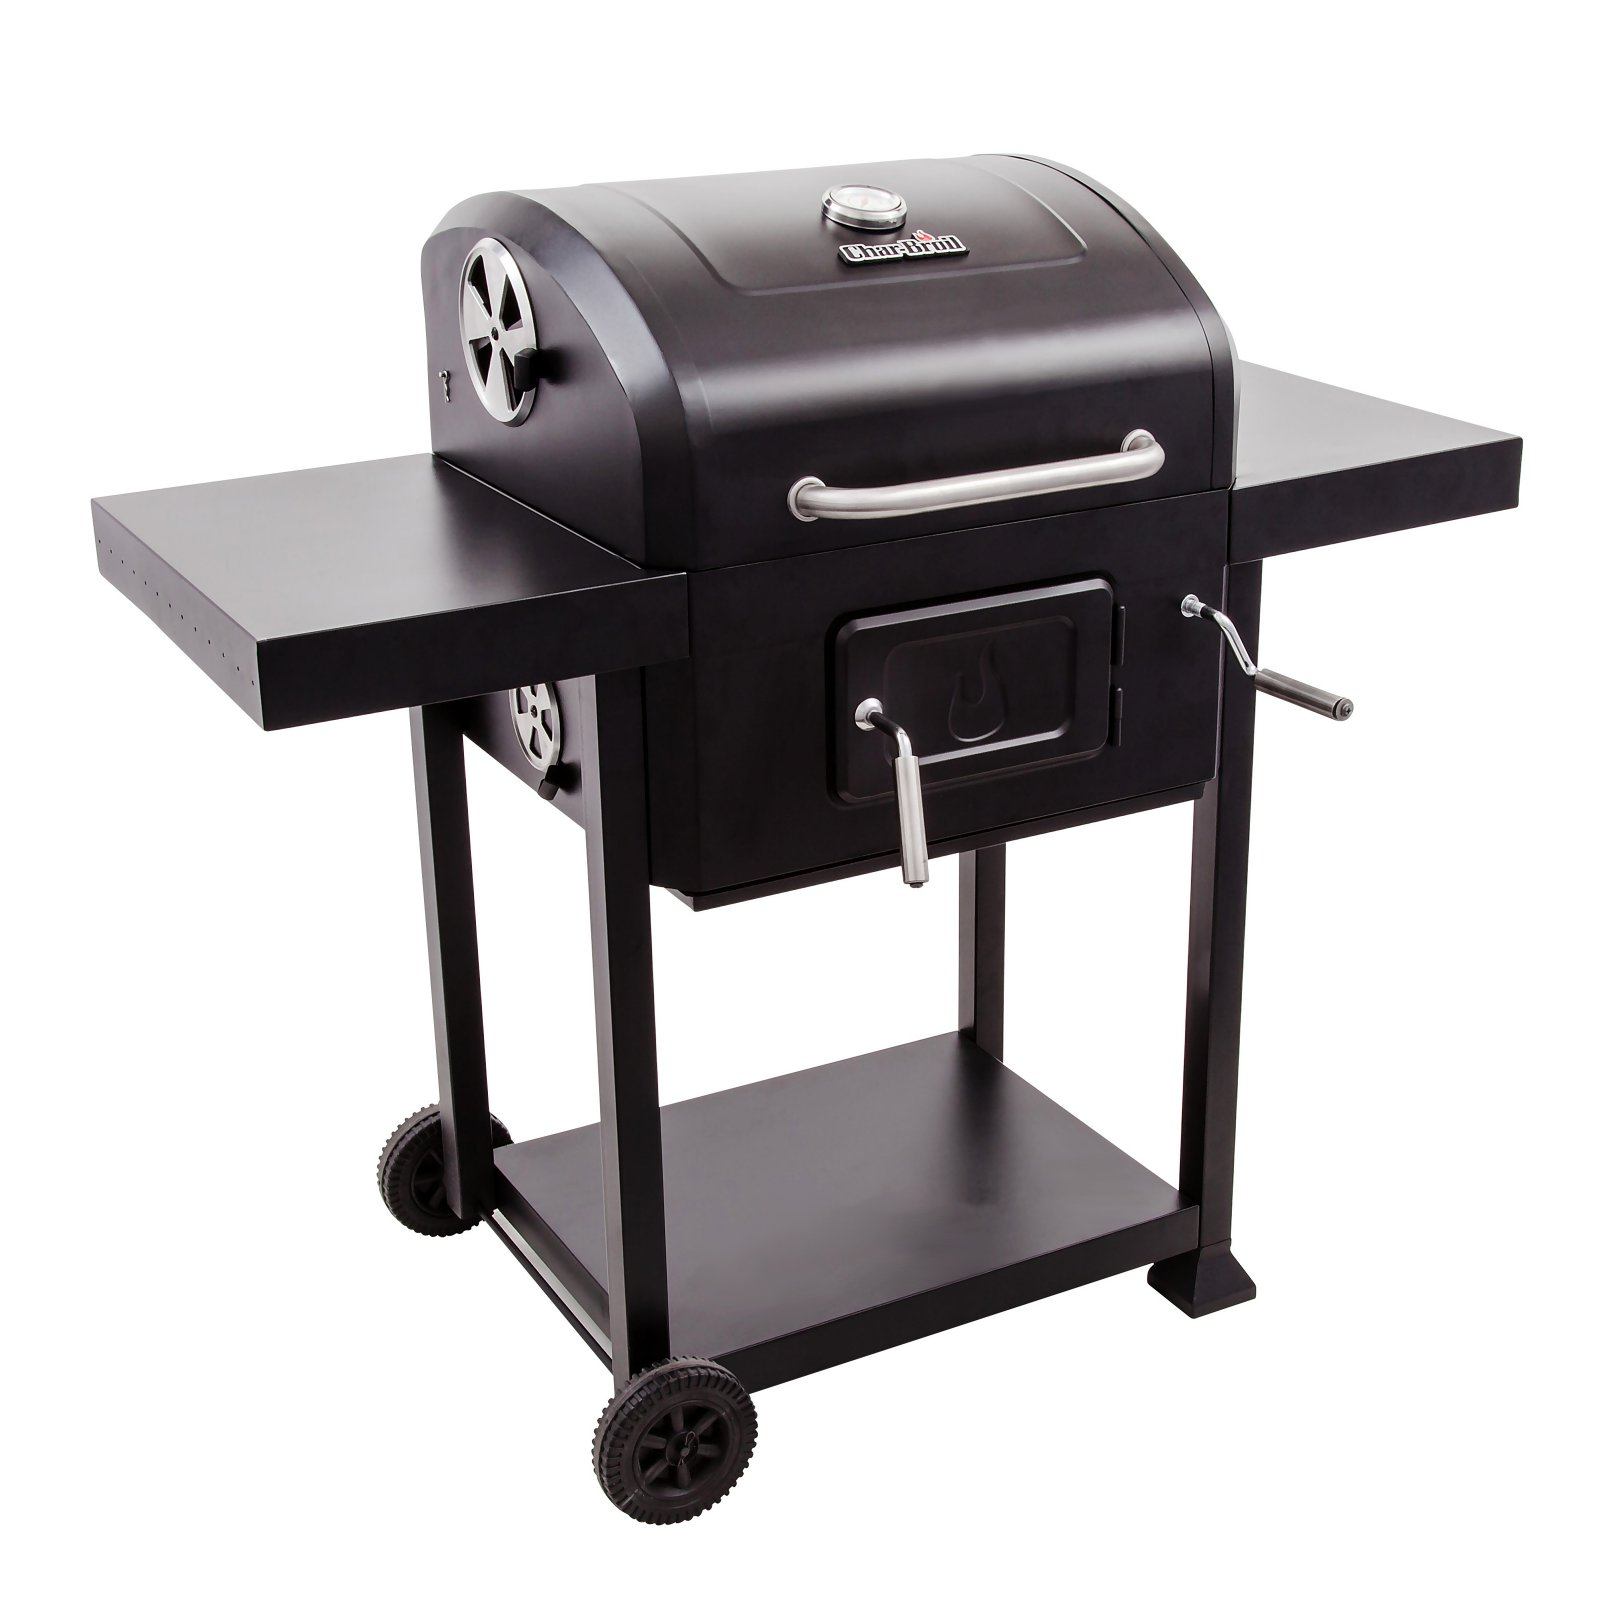 Char-Broil 400 sq in Charcoal Grill, 580 by Char-Broil